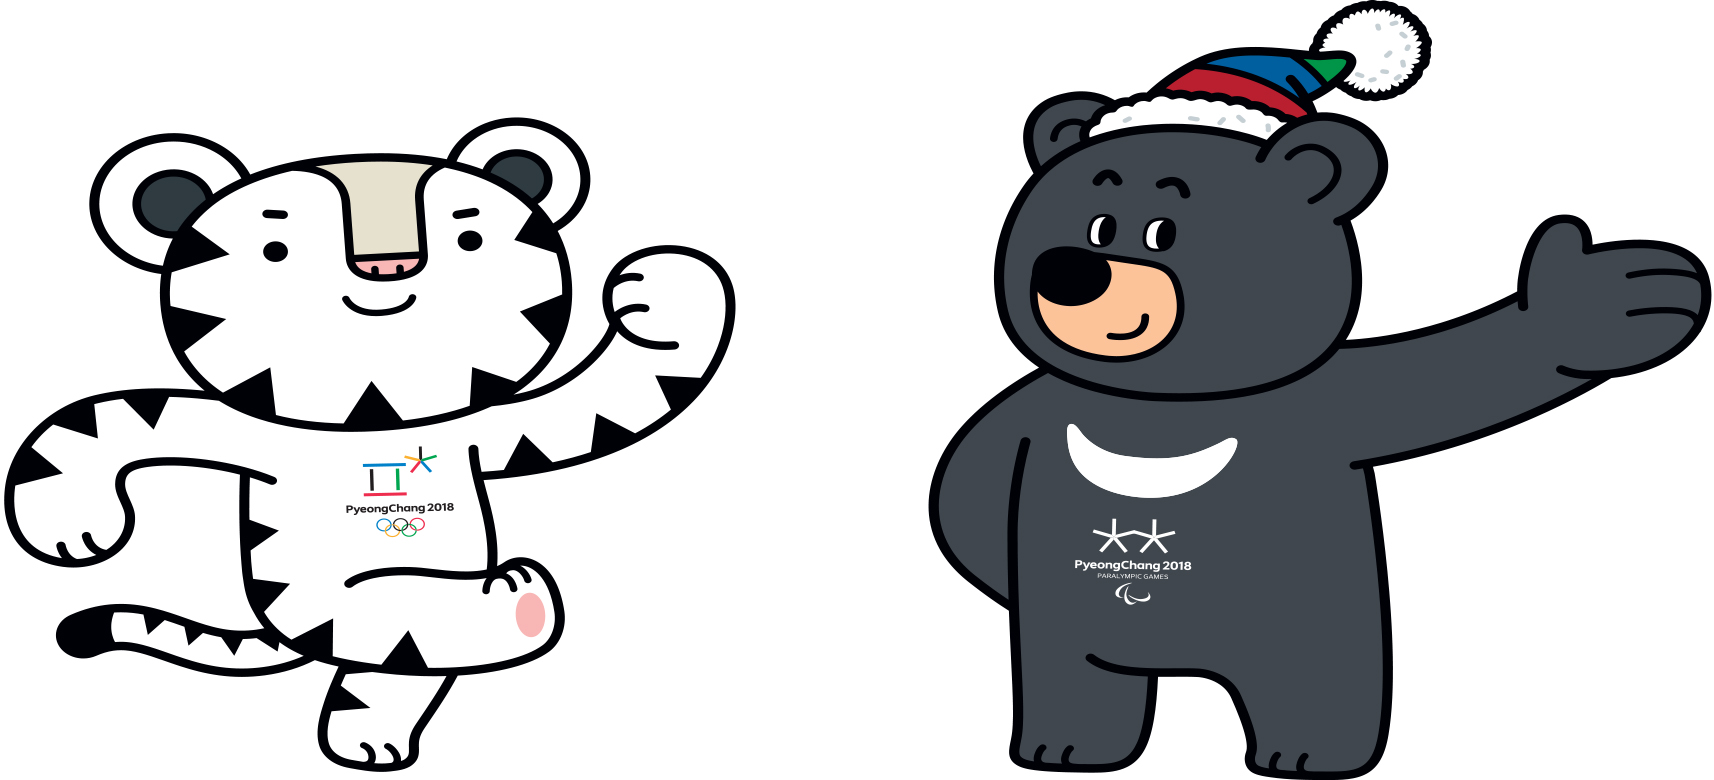 2018 olympic clipart image transparent download PyeongChang 2018 to be Remembered as \'Olympics of Peace, IT and Culture\' image transparent download